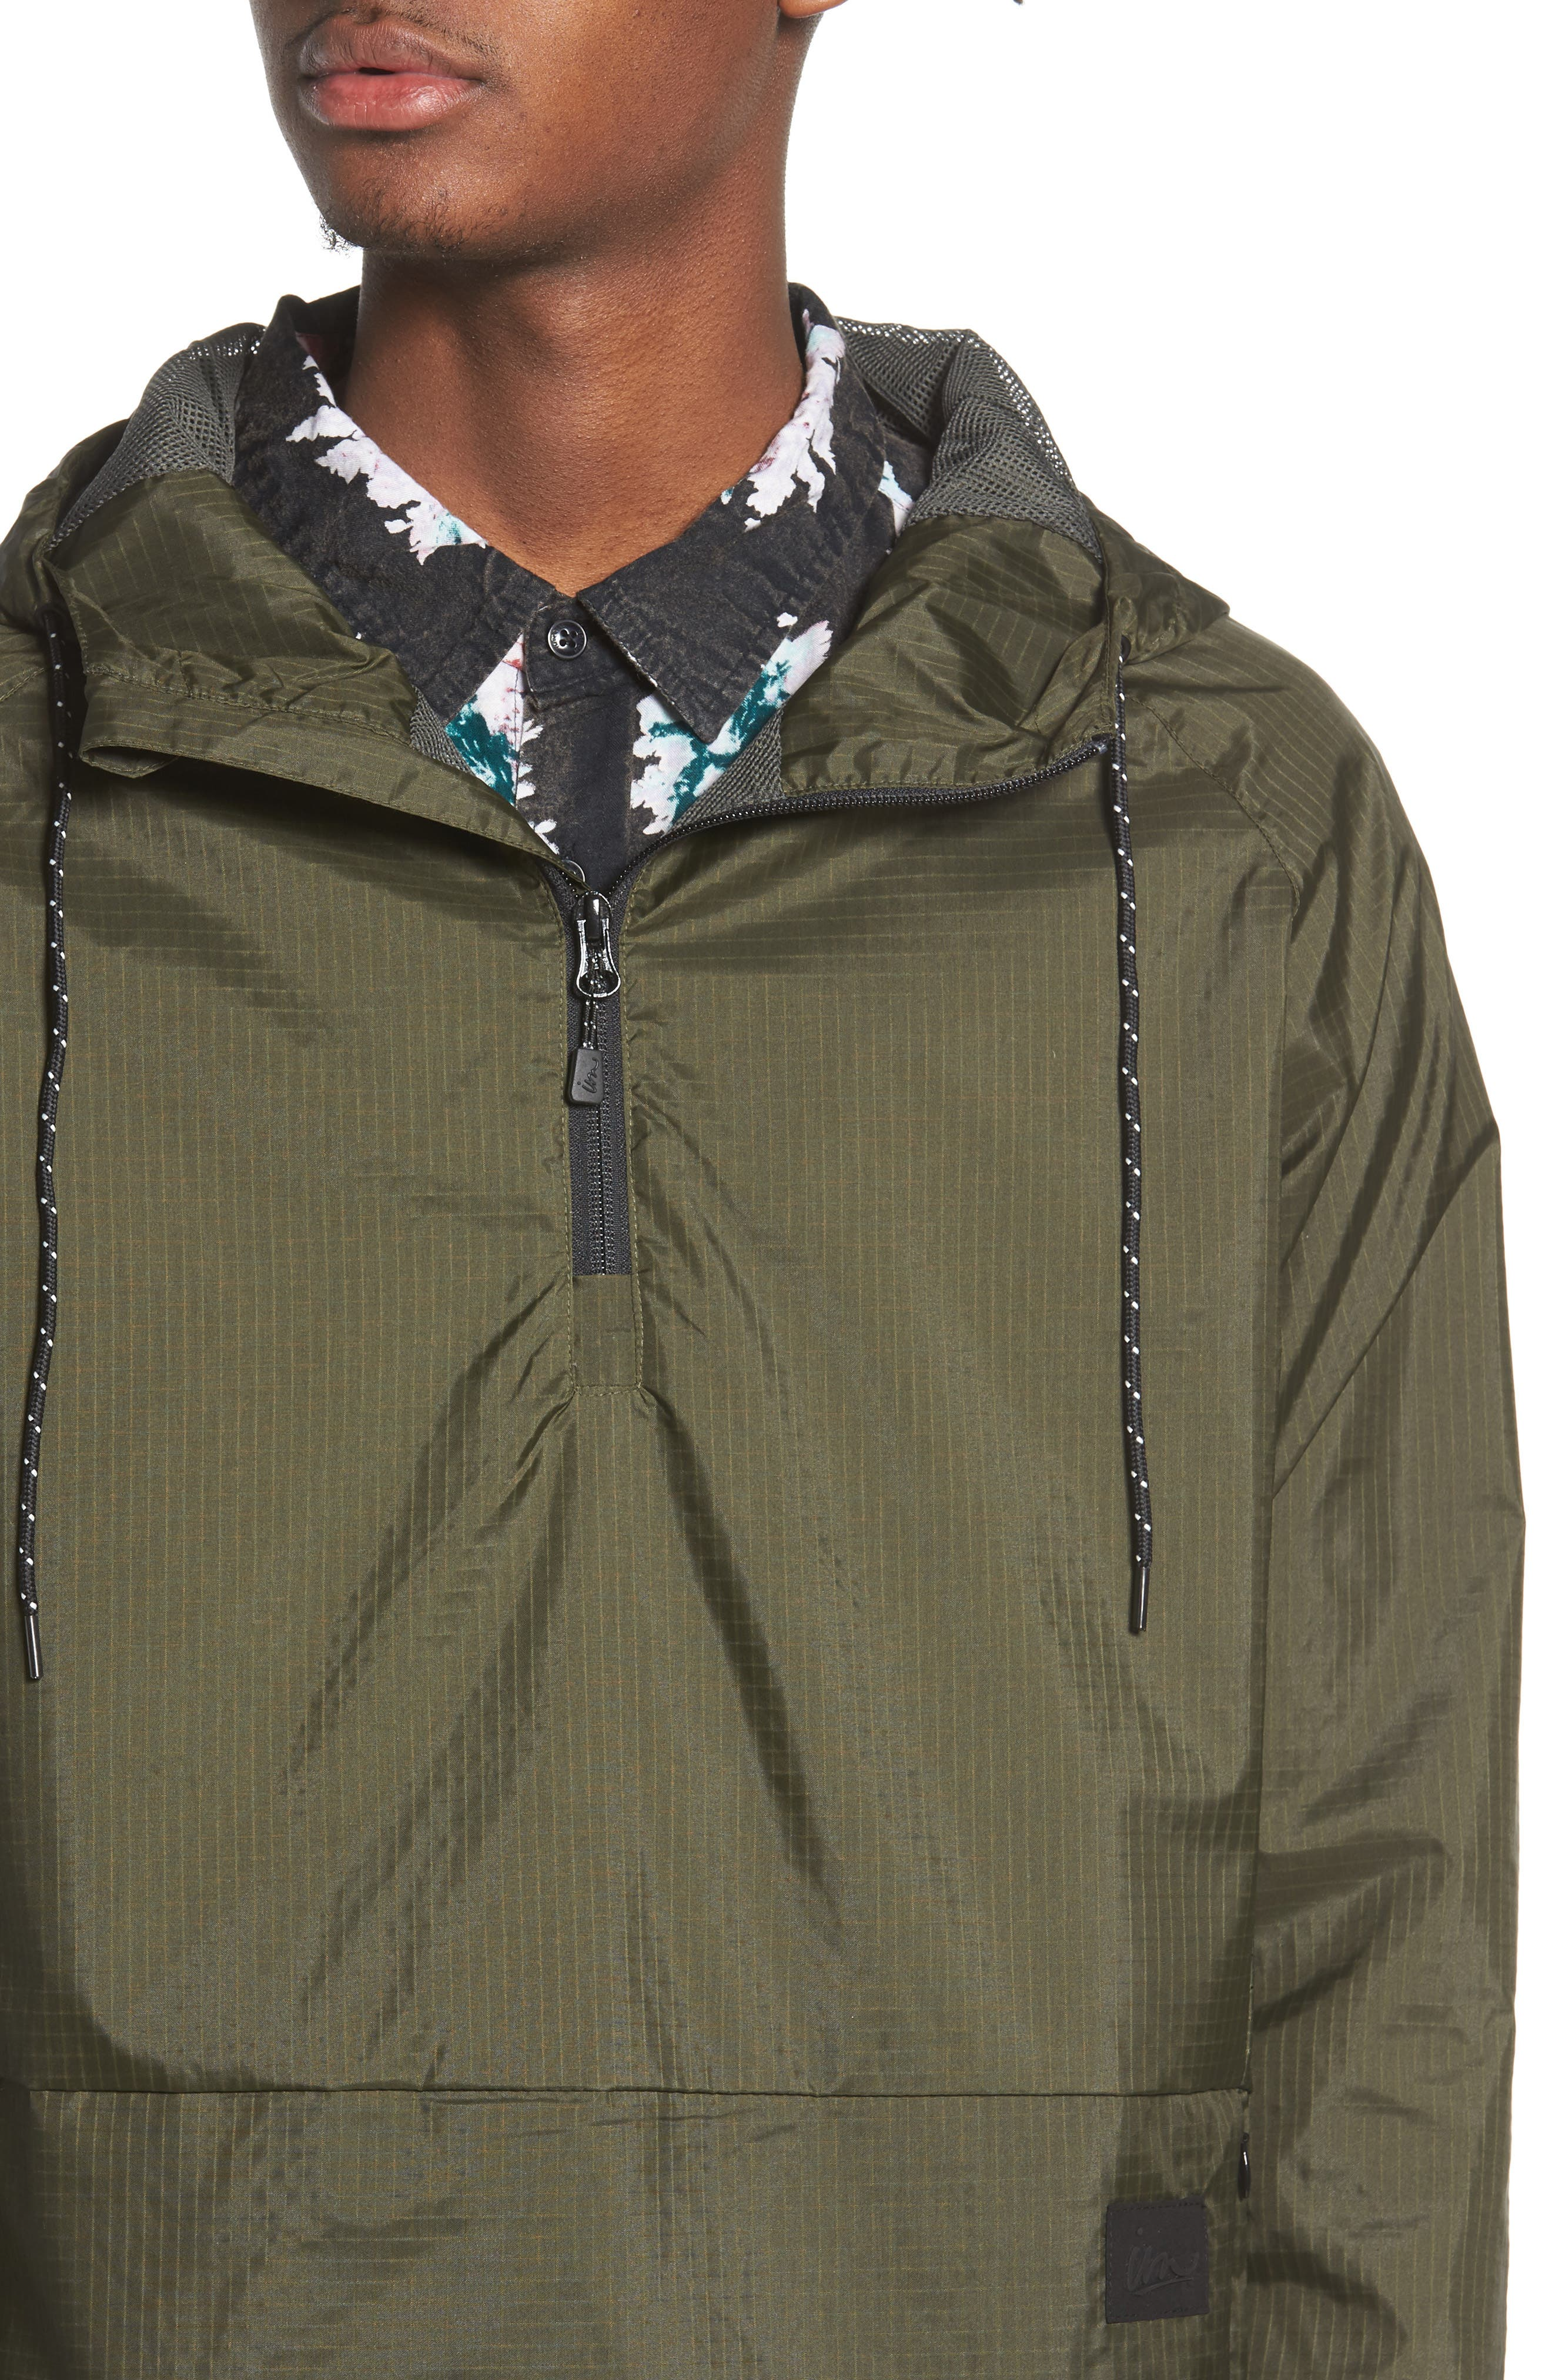 NCT Bezel Packable Anorak,                             Alternate thumbnail 4, color,                             Olive